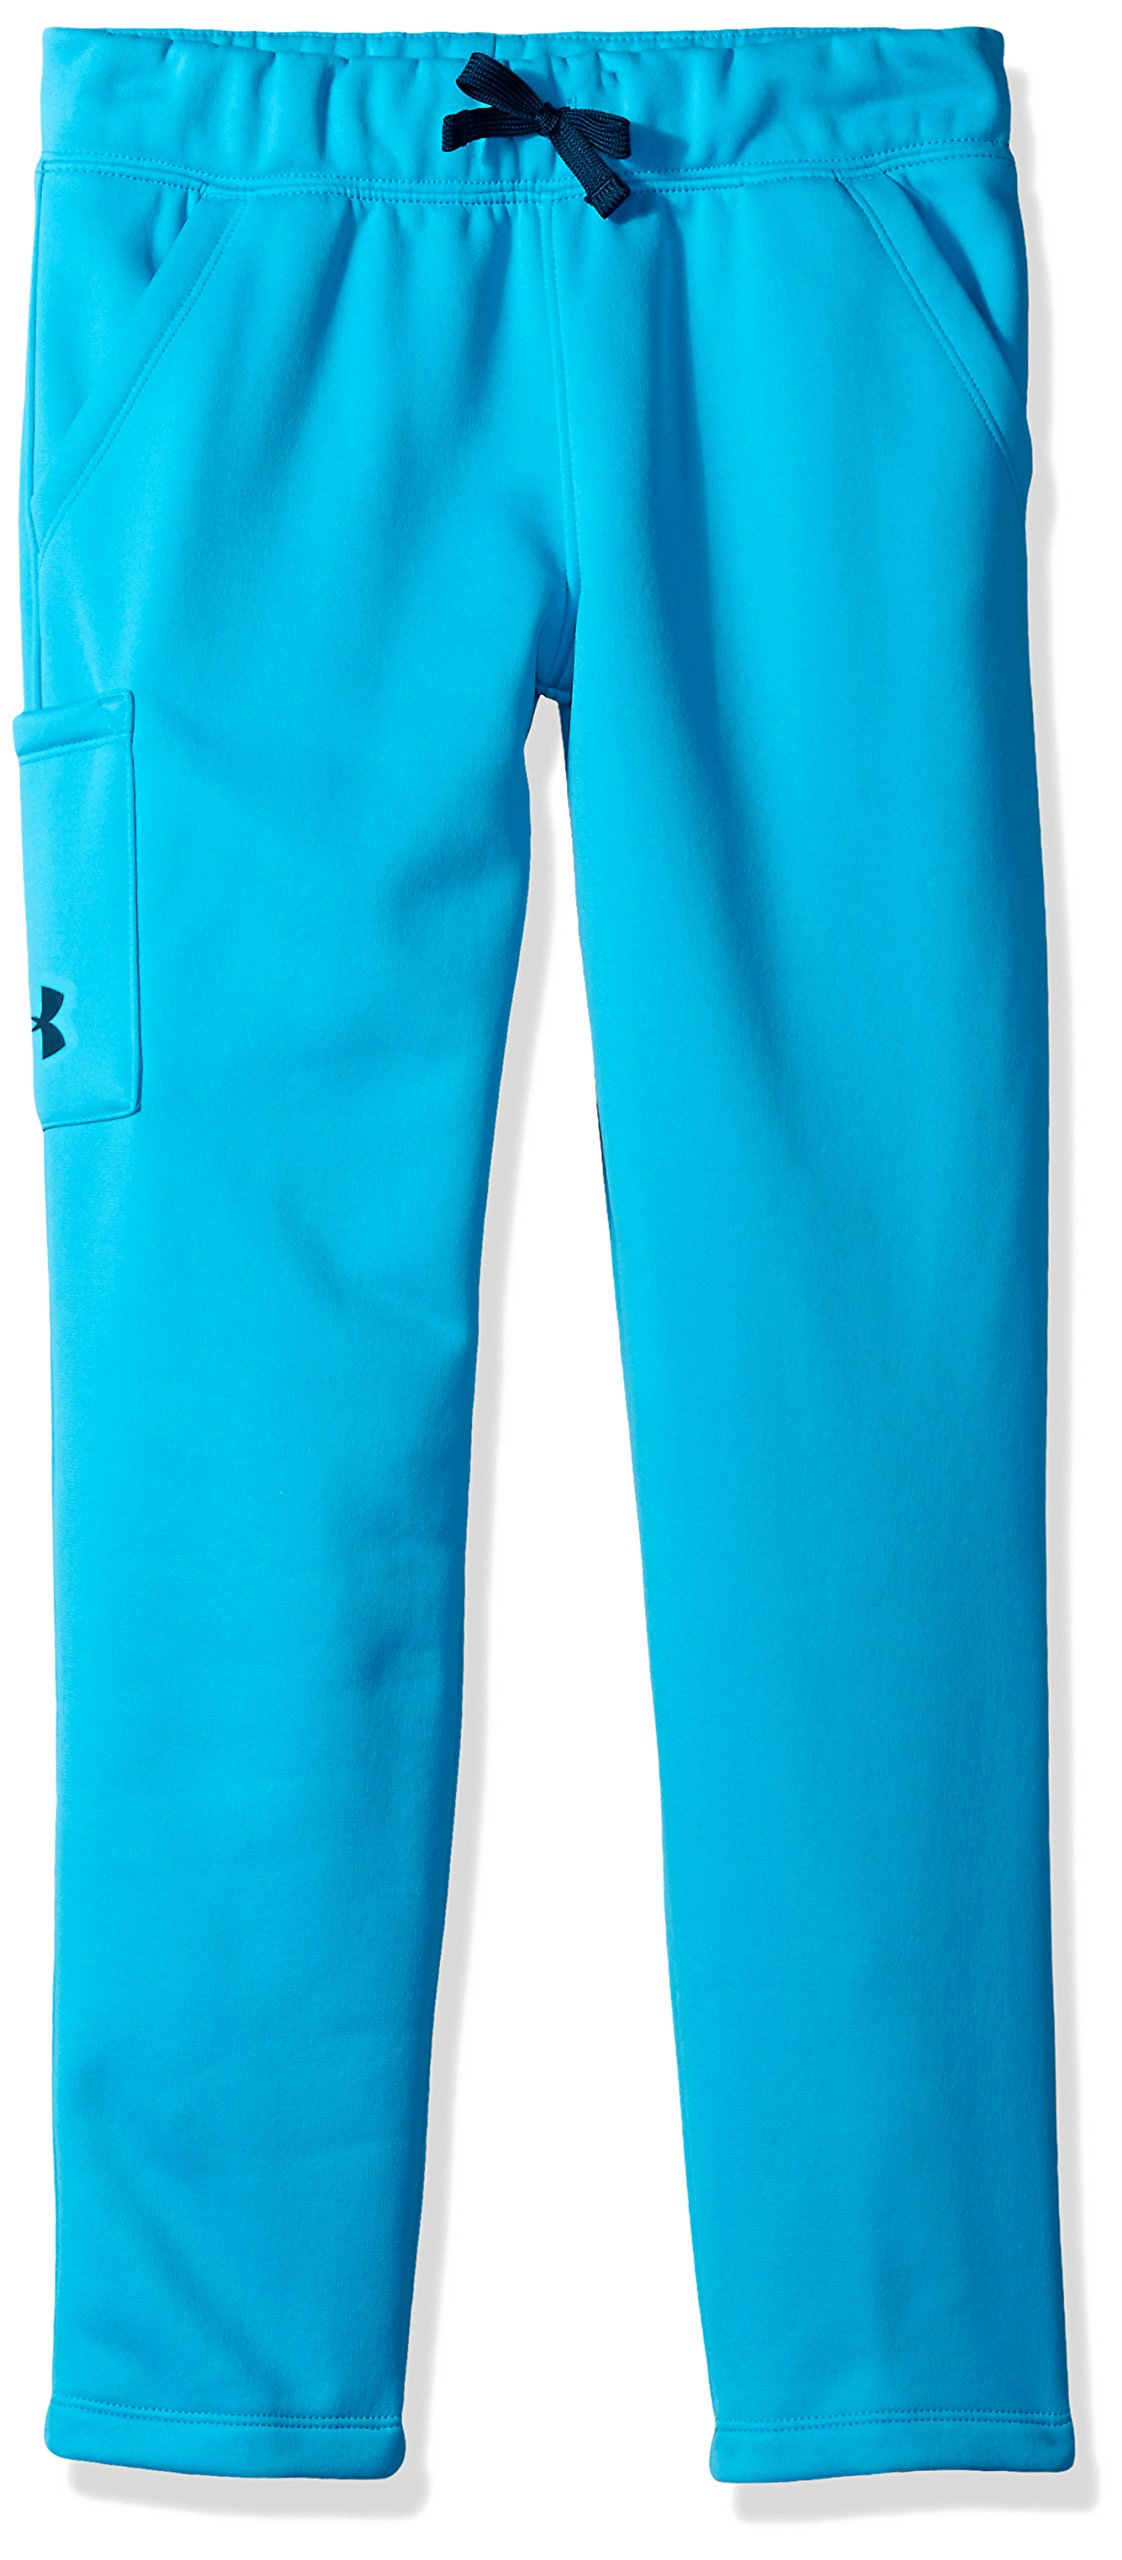 Under Armour Girls' Armour Fleece Pants,Blue Shift (929)/True Ink, Youth Large by Under Armour